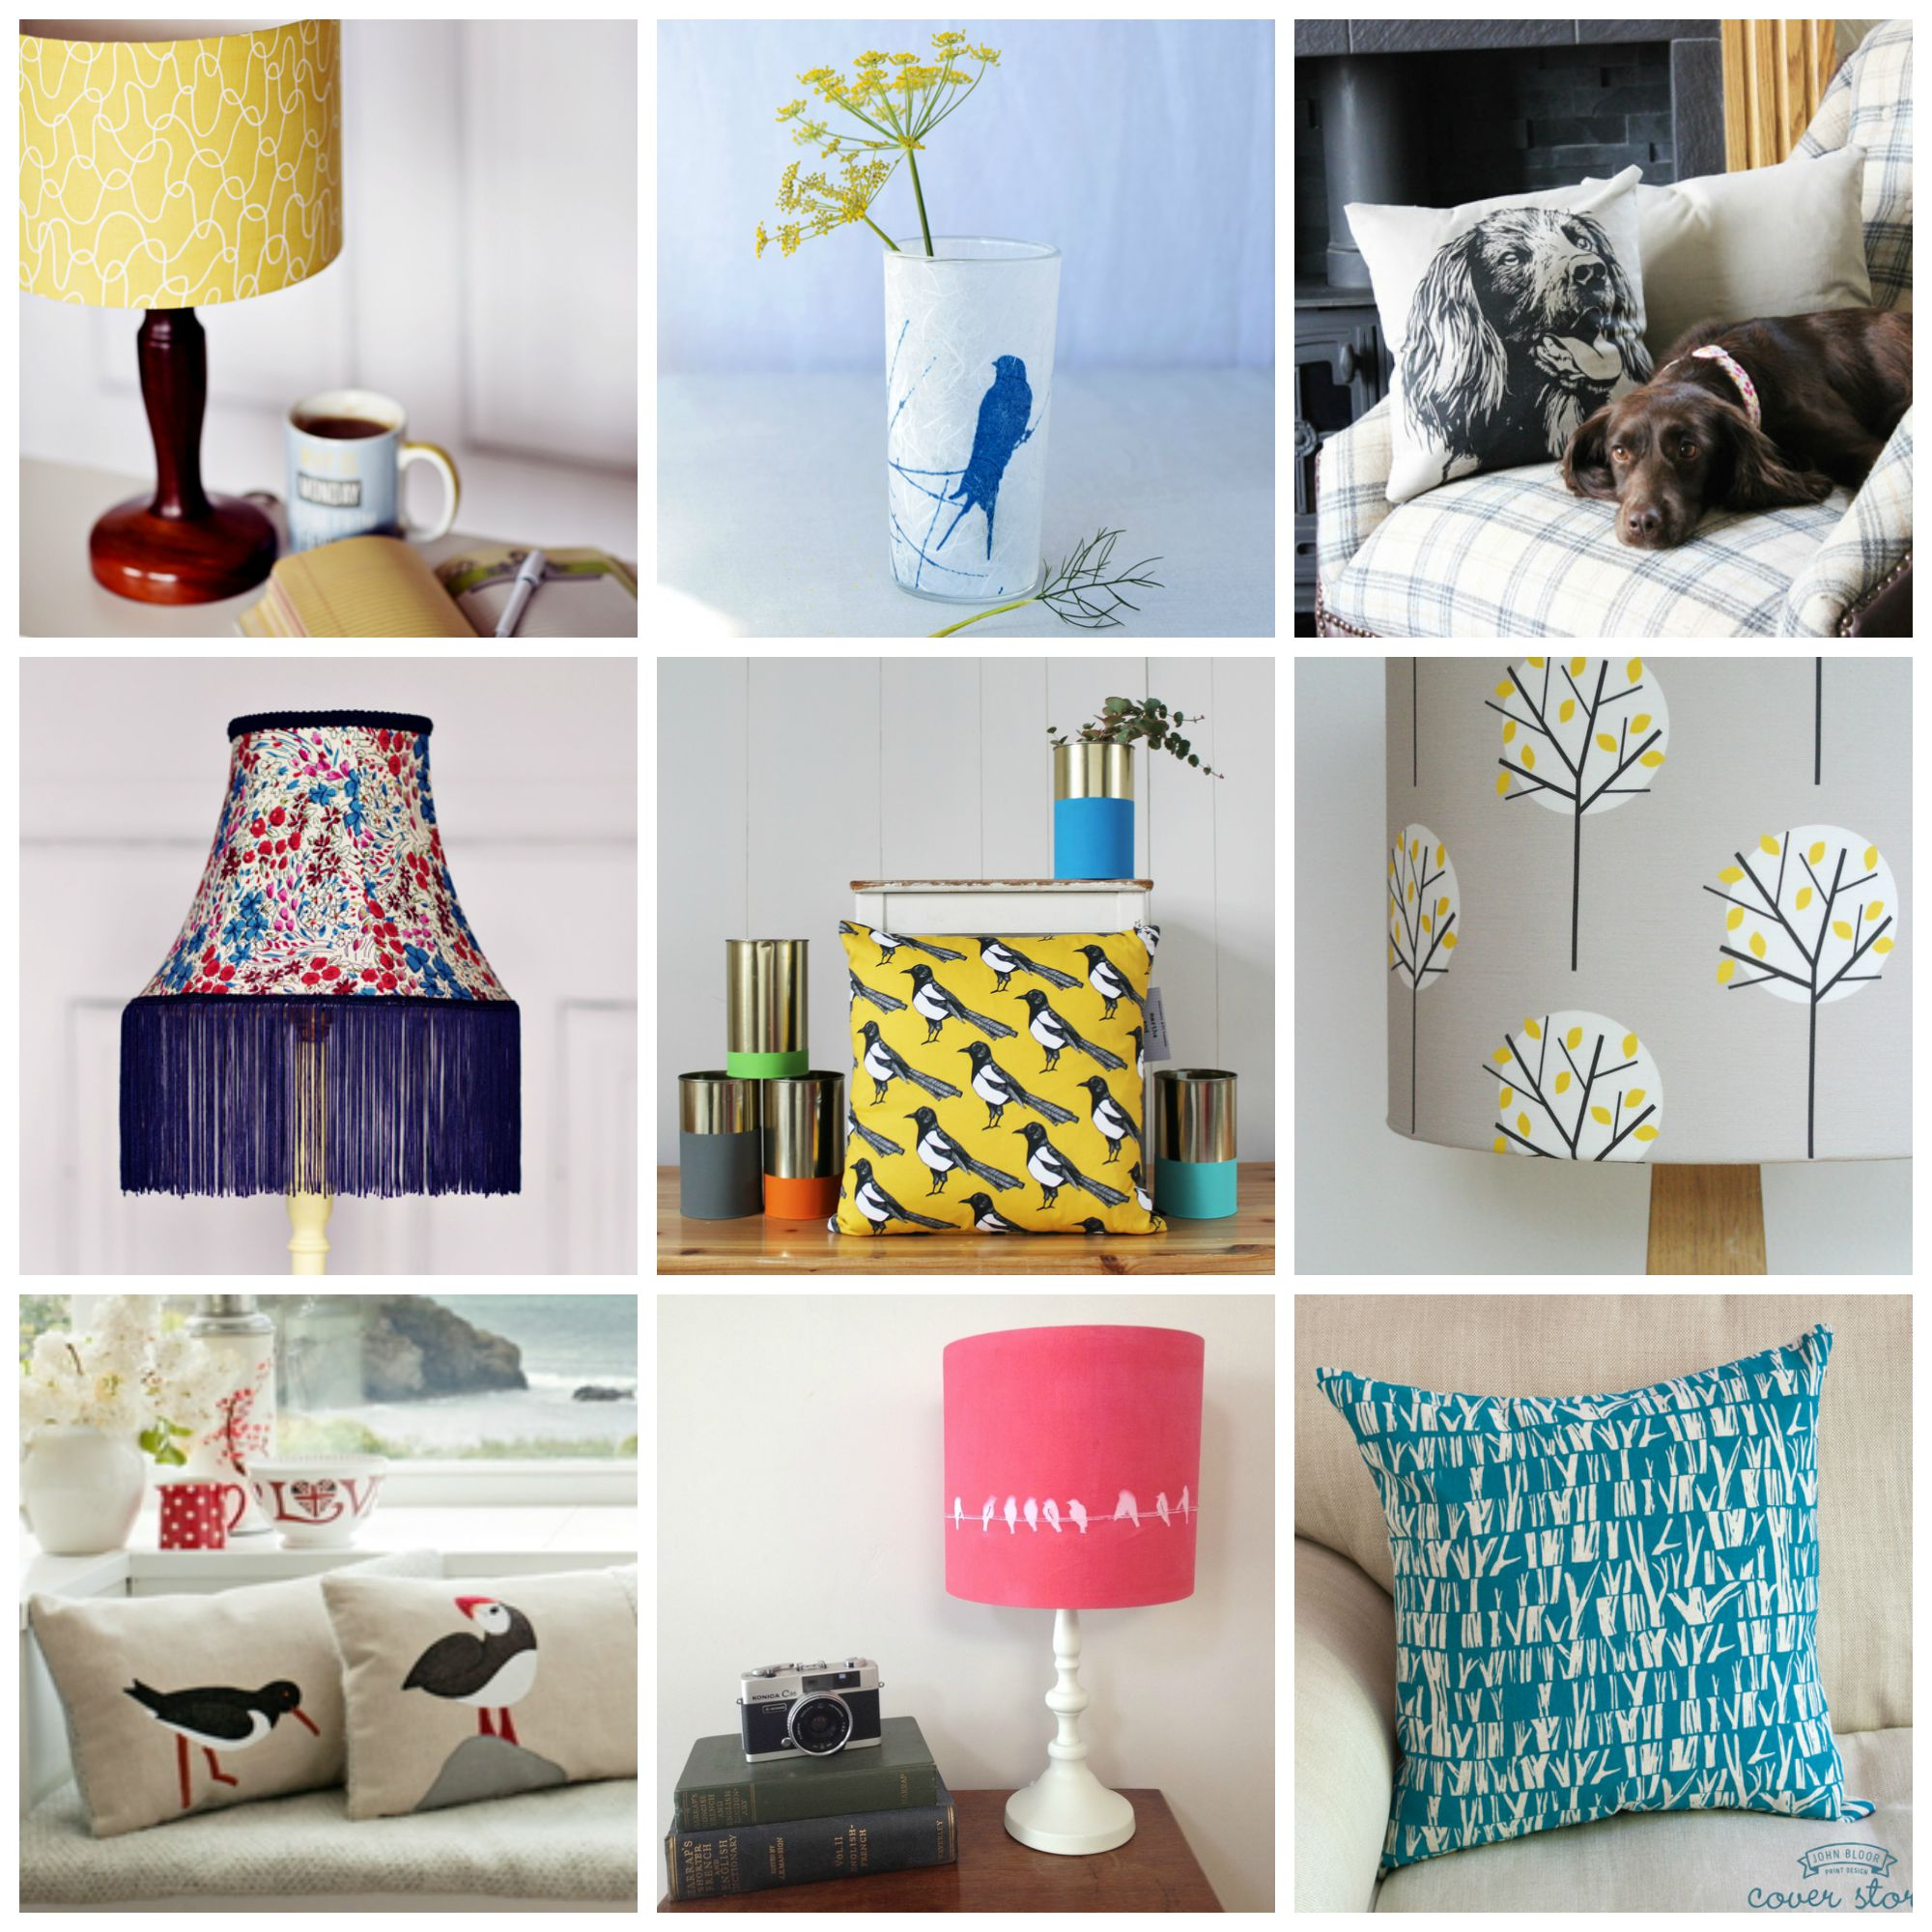 Merveilleux Handmade Lampshades Cushions And Homewares